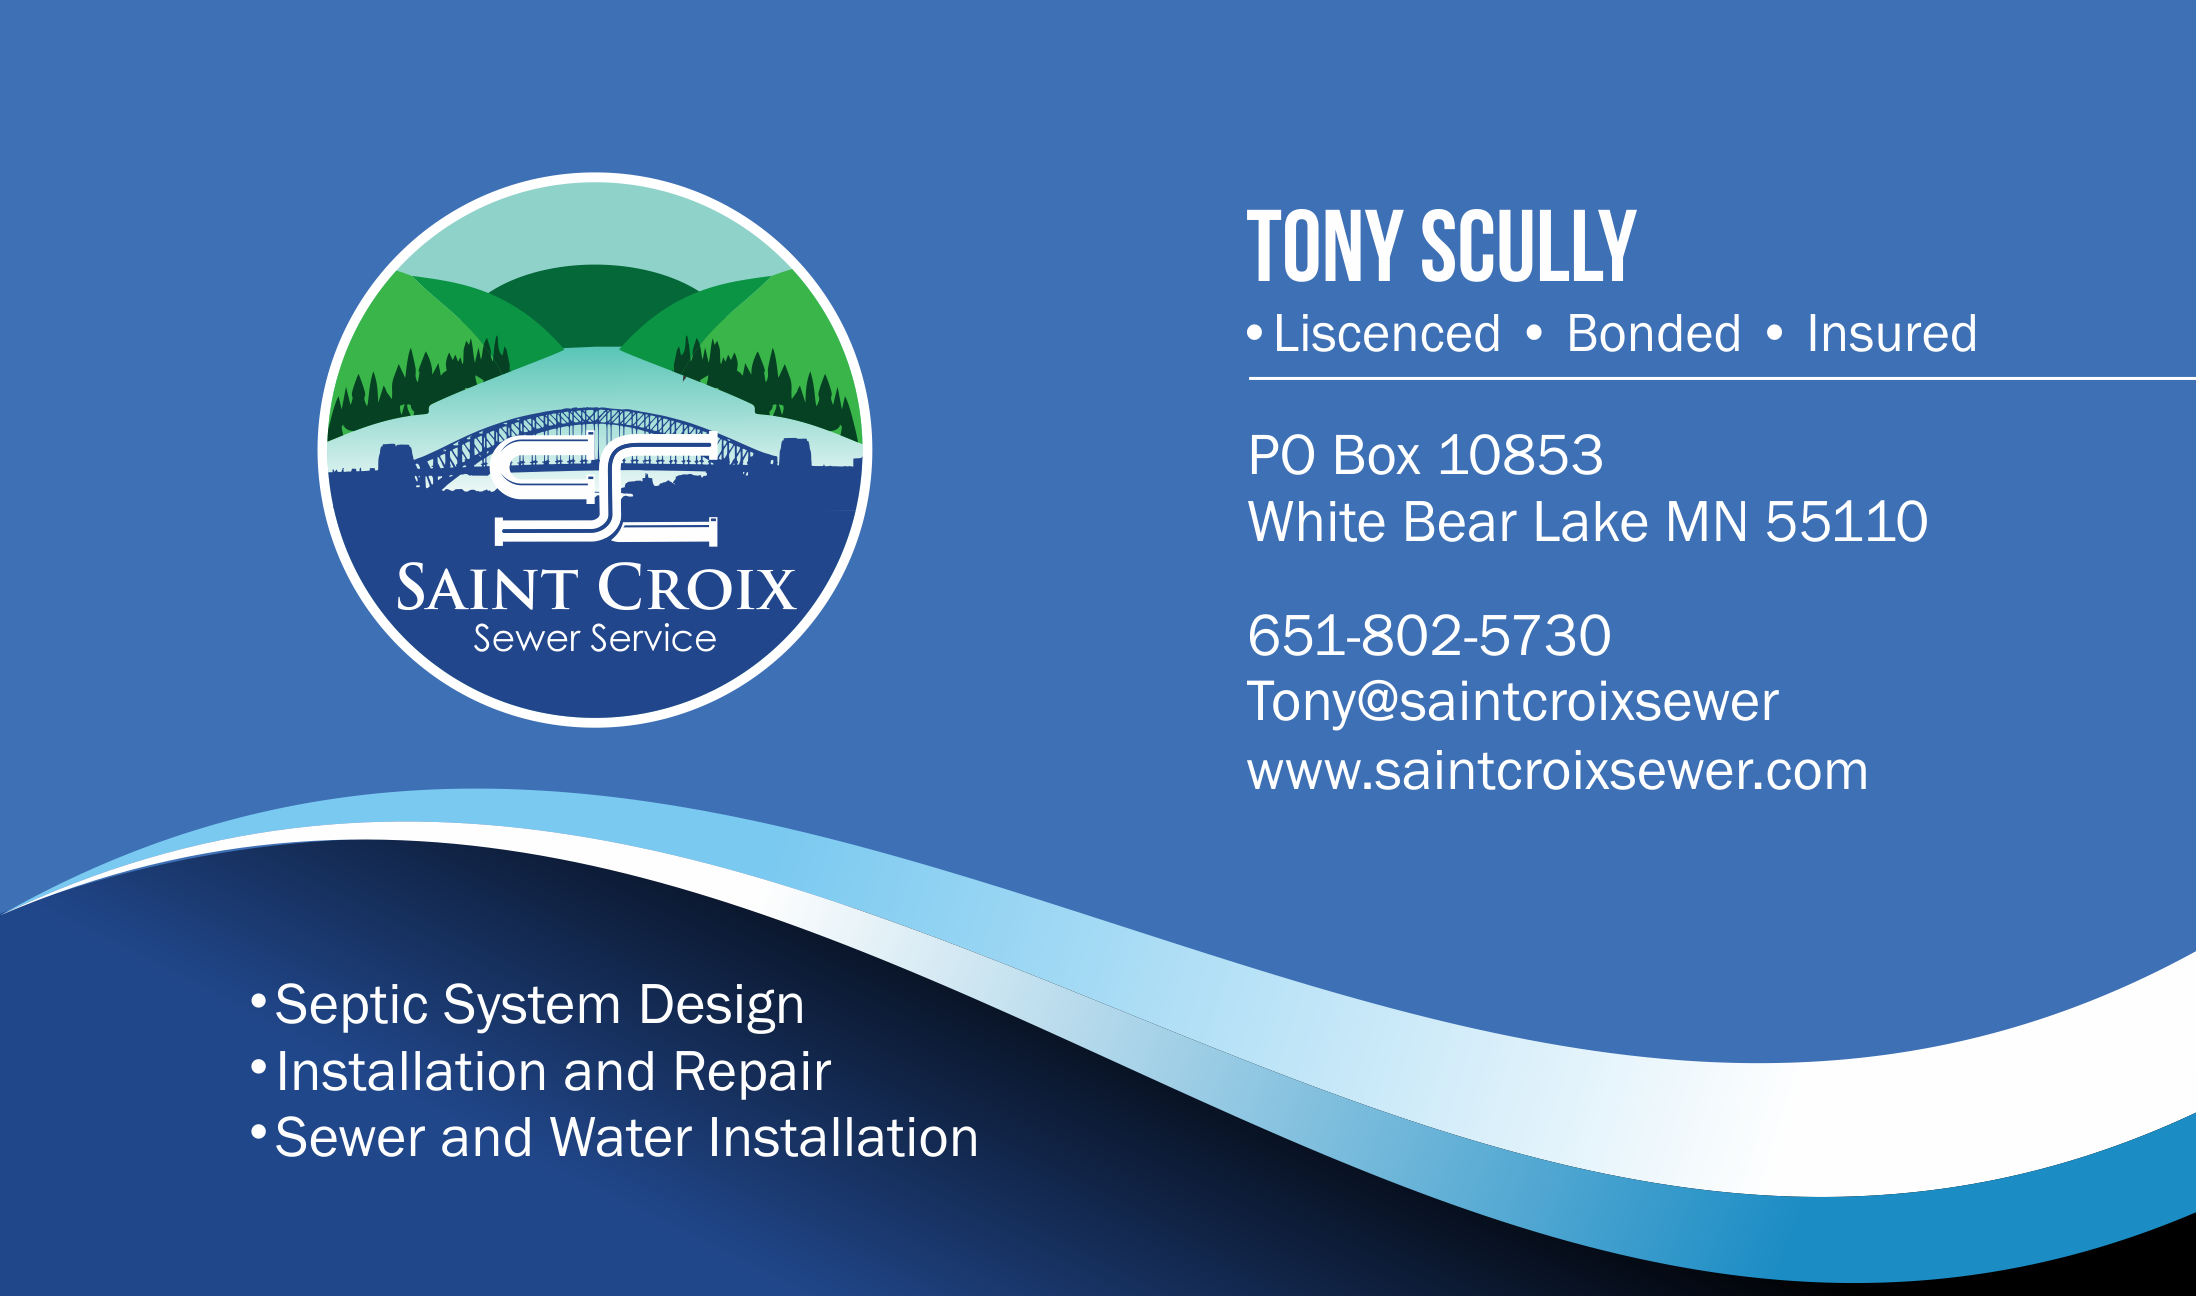 I need a great new design for my new business. My work is all done in the st croix river valley area